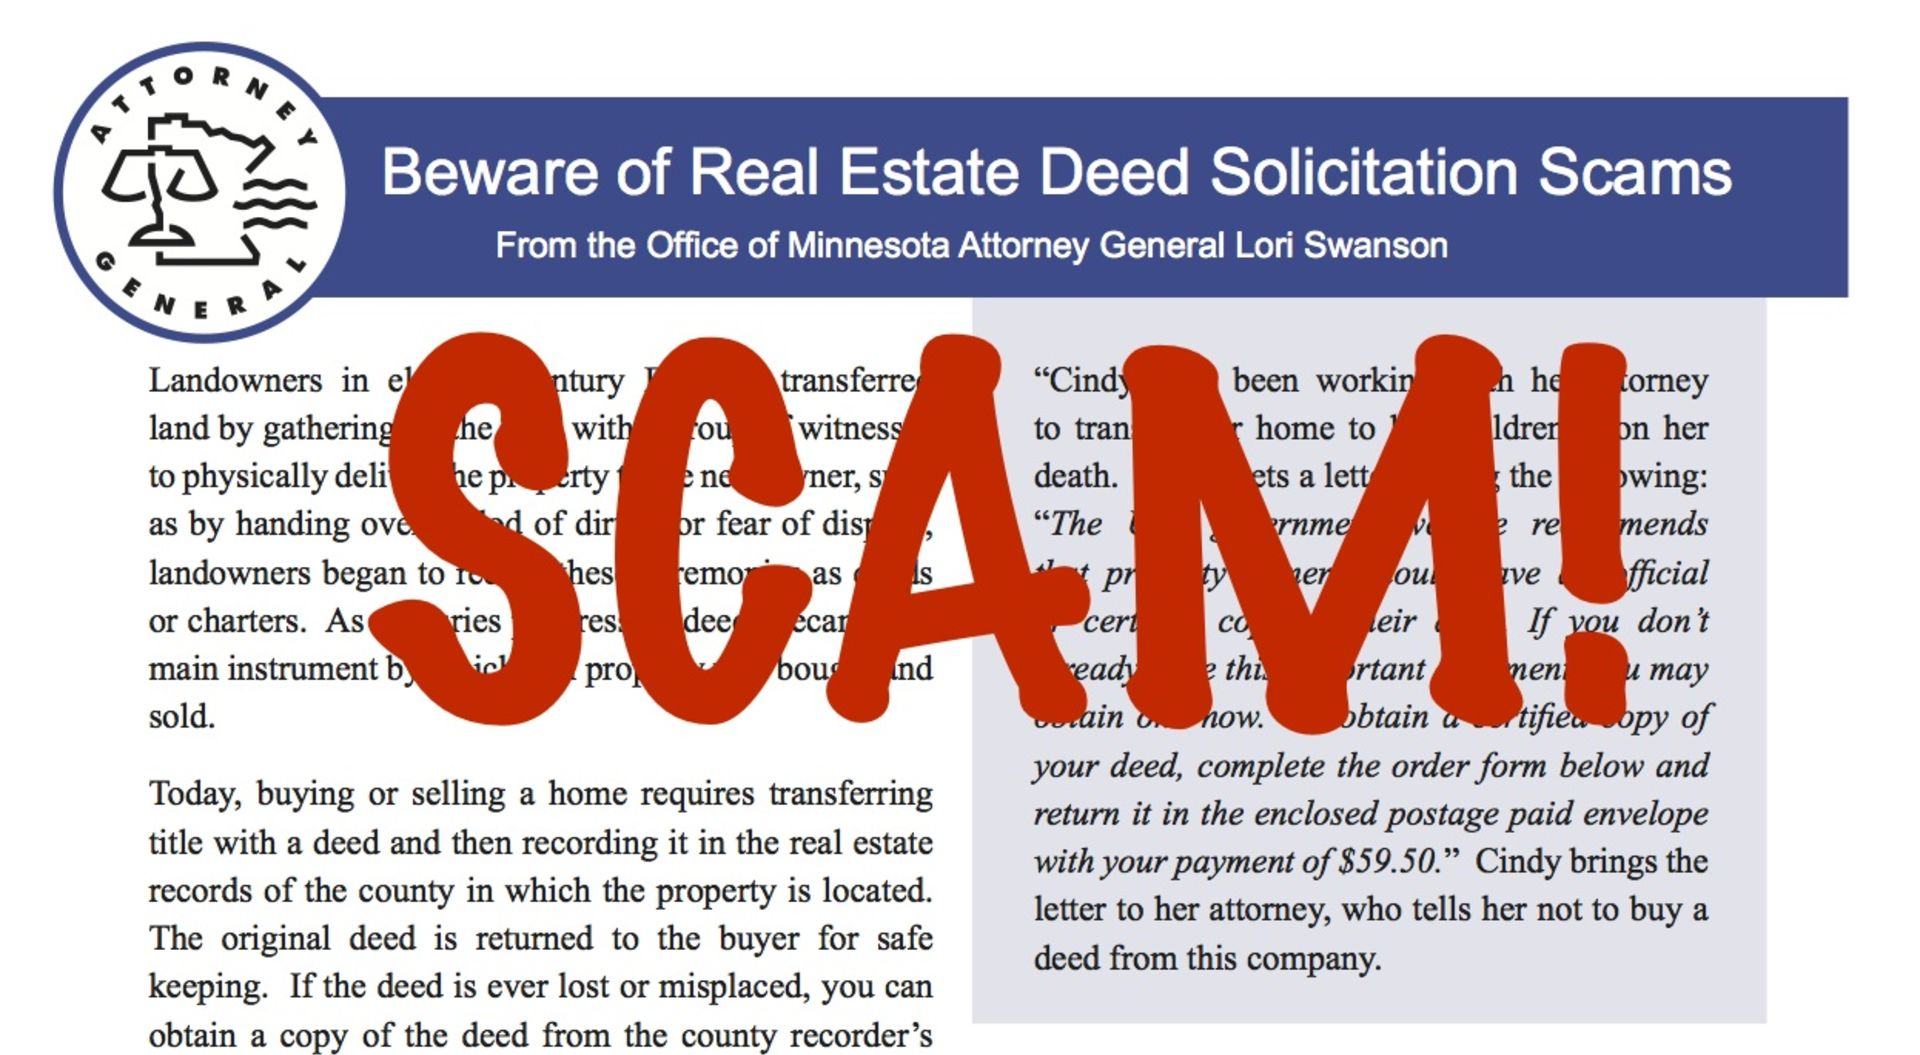 Buyers Be Aware of Real Estate Deed Solicitation Scams in Minnesota